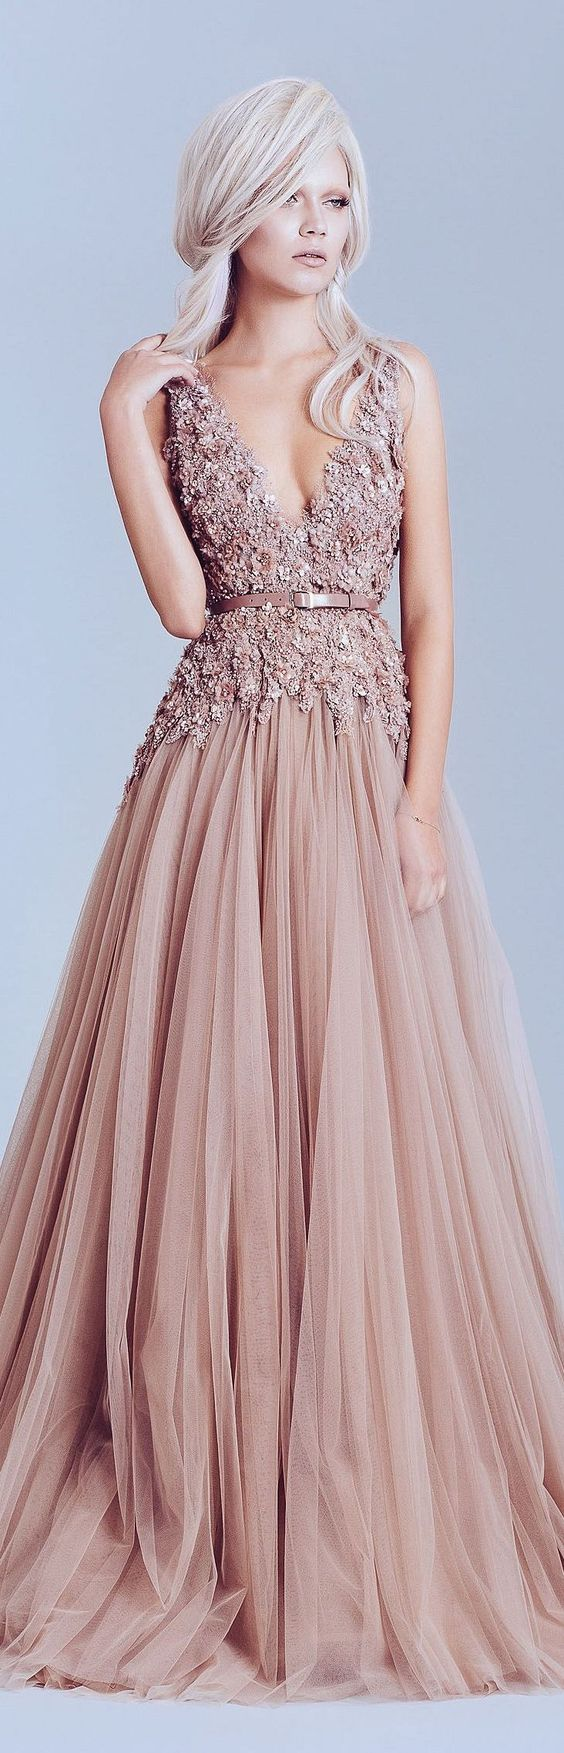 Elegant V-neck Prom Dress,A-line Ball Gowns,Floor Length Prom Dress ...